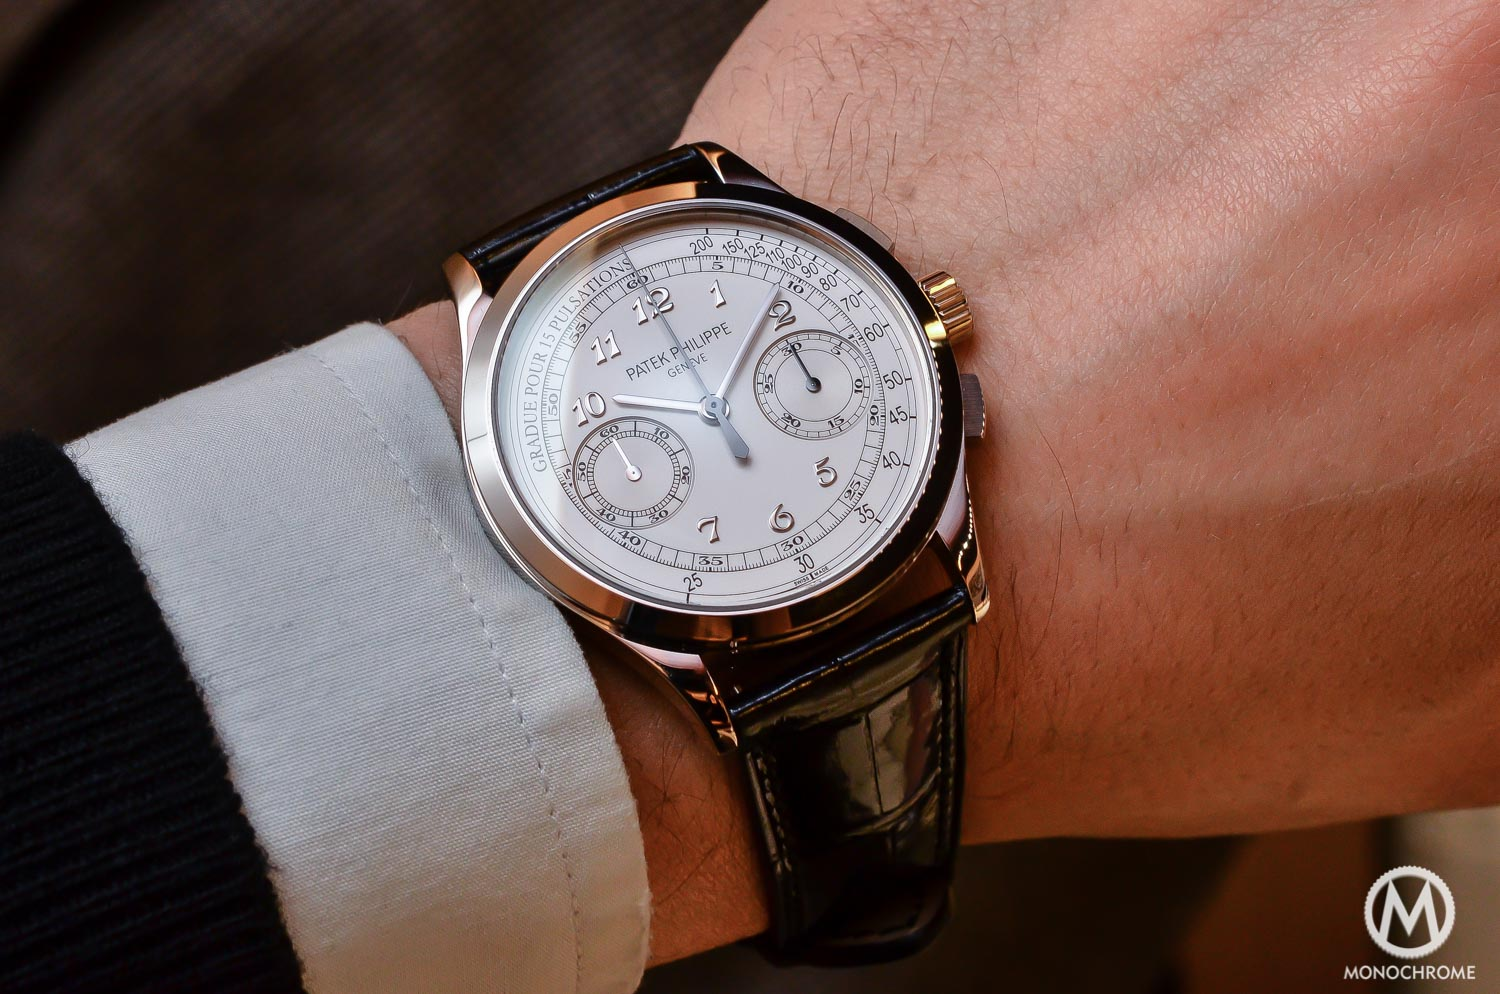 Why the patek philippe 5170g chronograph is such a cool watch review with live photos price for Patek phillipe watch